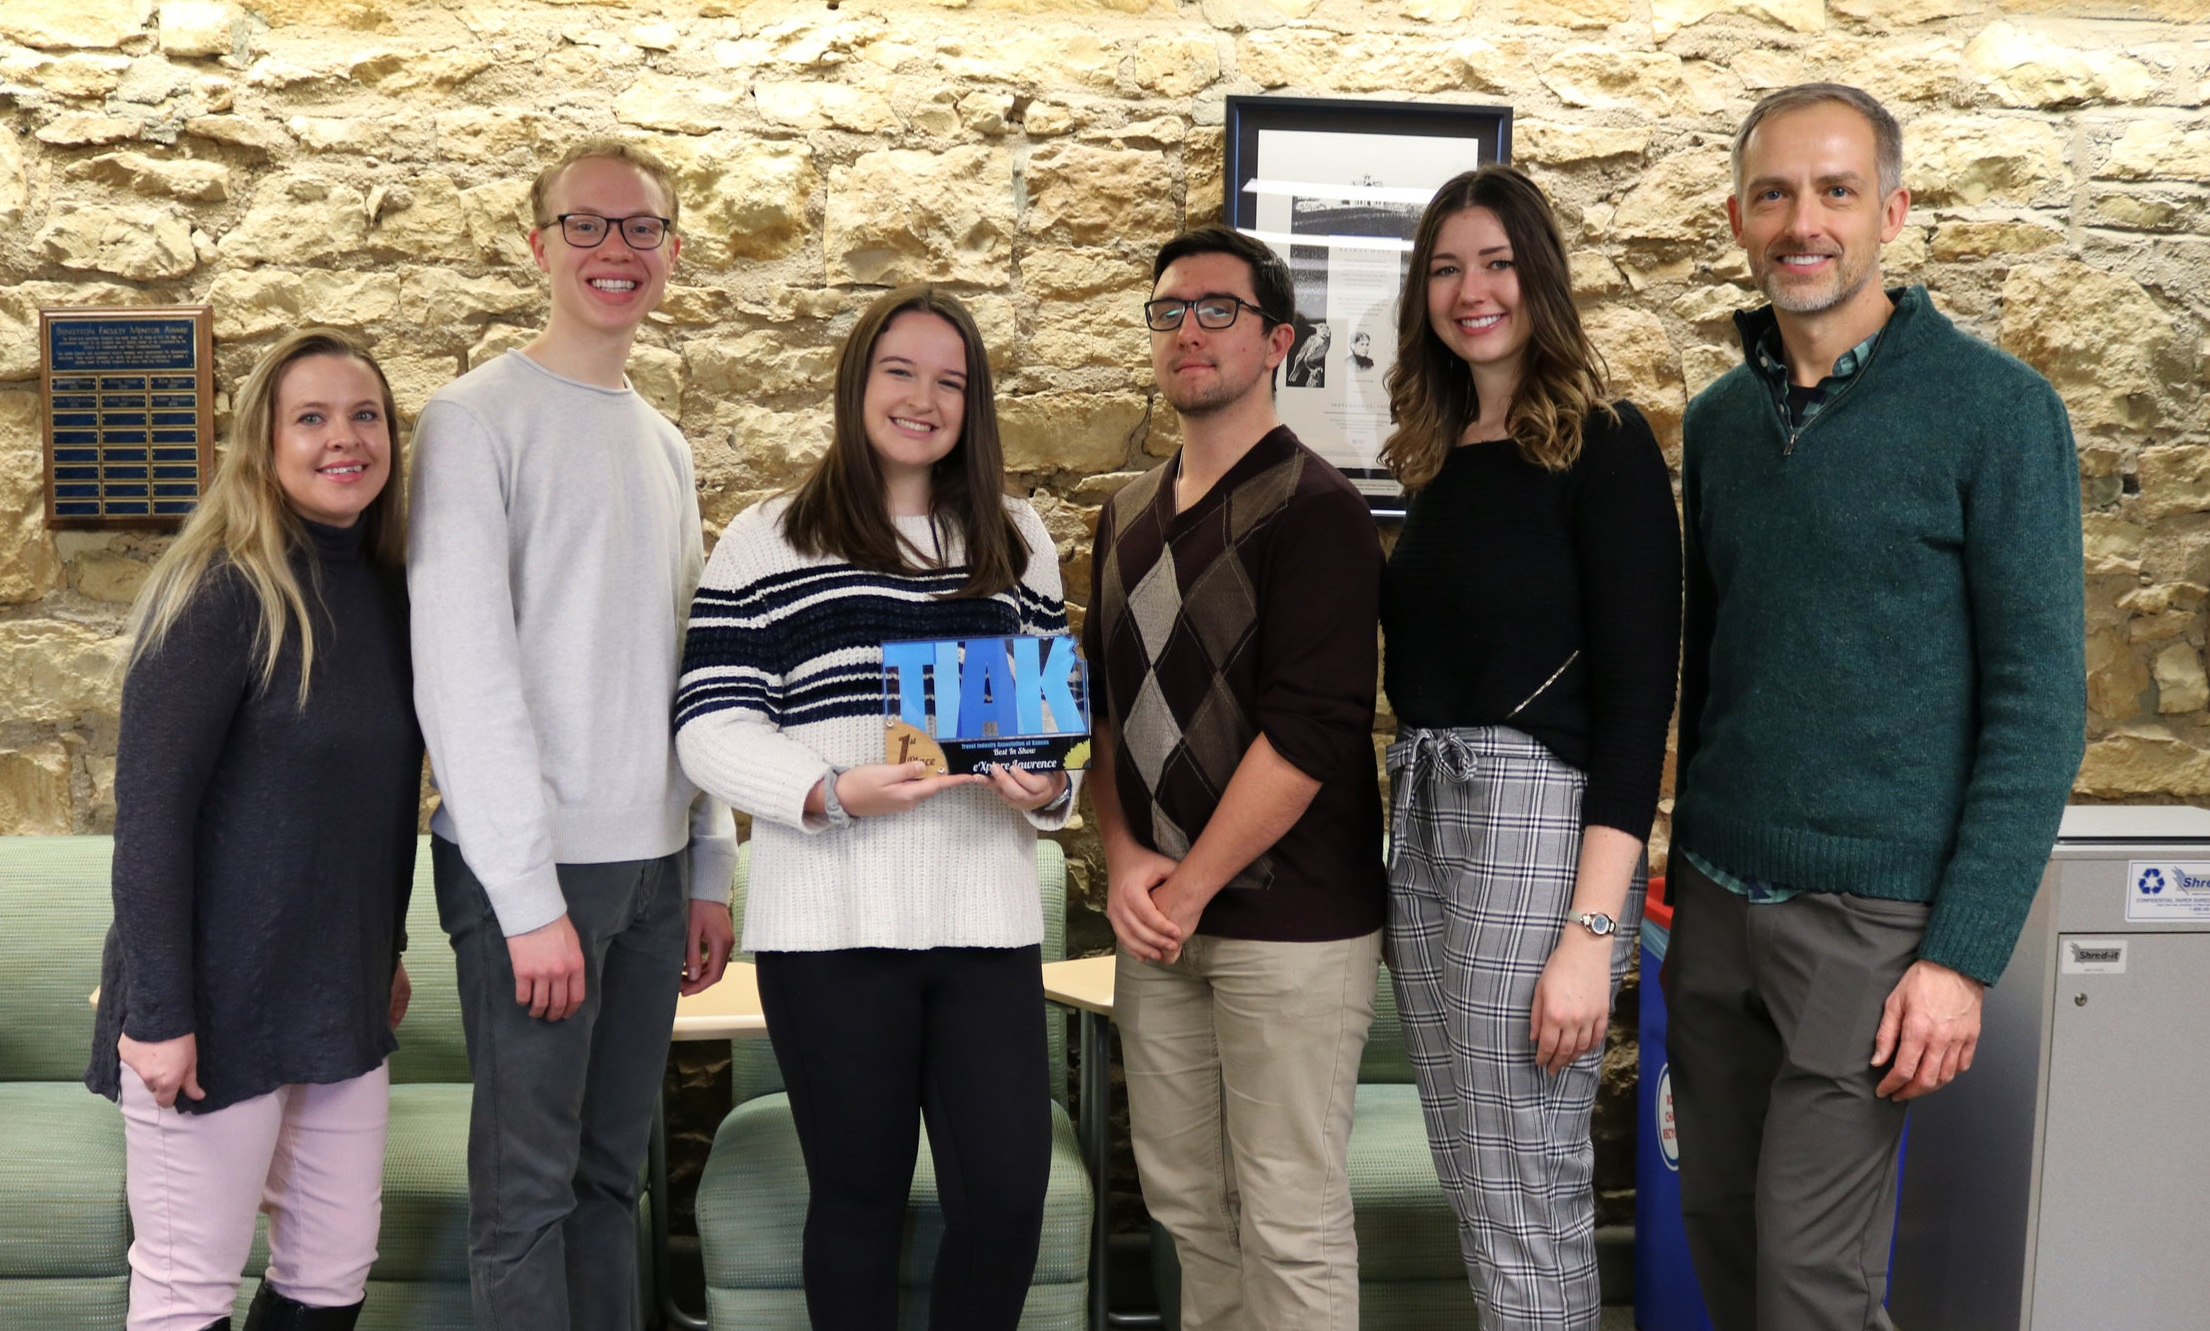 Students from JOUR 302 were presented with the Travel Industry Association of Kansas Marketing award. From left: Andrea Johnson (Director of Marketing & Communications, Unmistakably Lawrence), Grant Heiman, Jordan Arnold, Brock Sauvage, Grace Woods and Associate Professor Peter Bobkowski